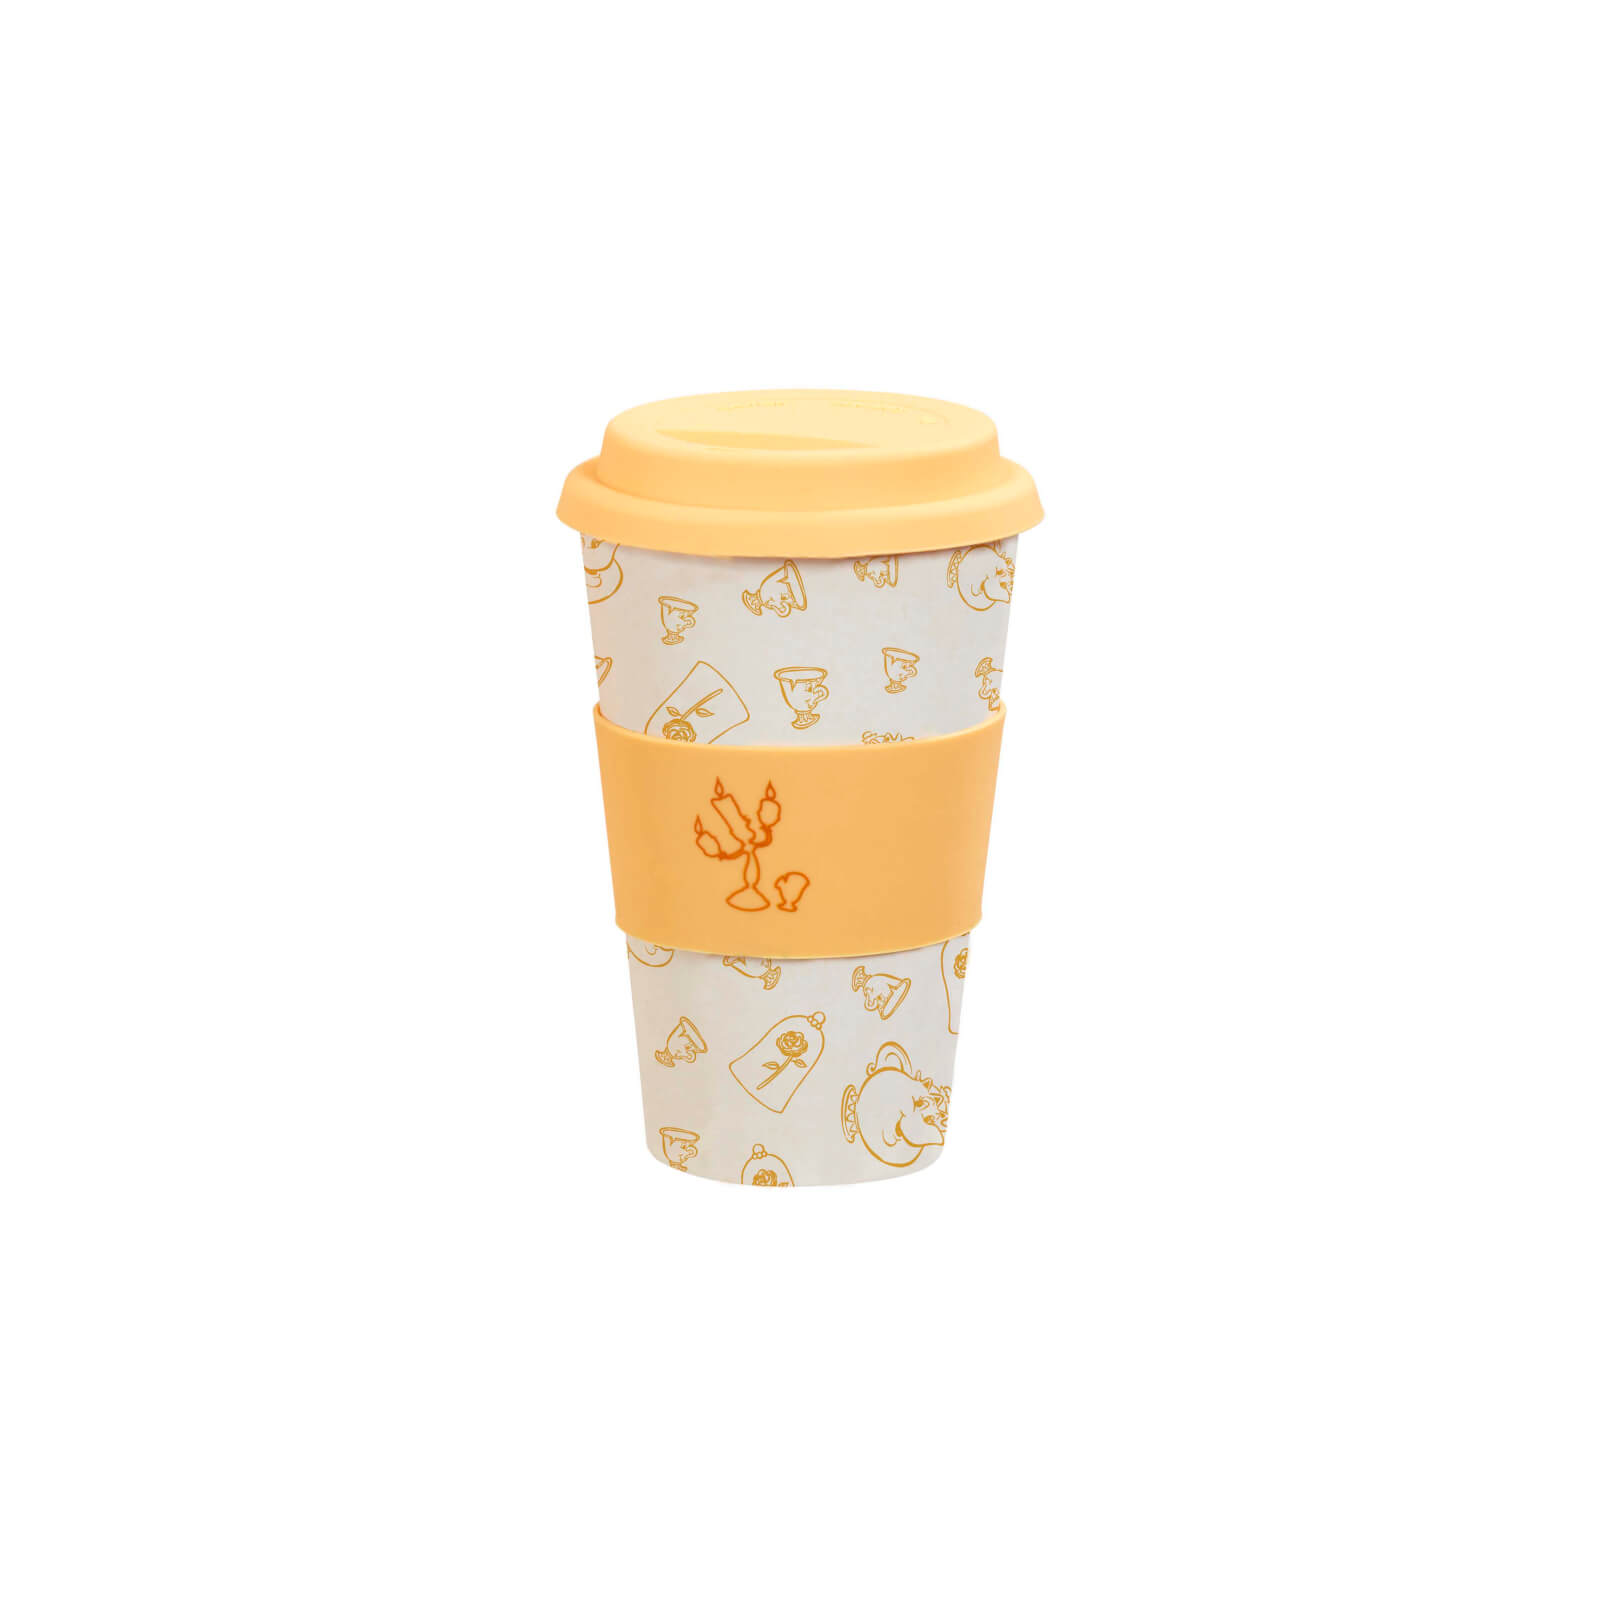 Image of Funko Homeware Disney Colour Block Be Our Guest Bamboo Lidded Mug